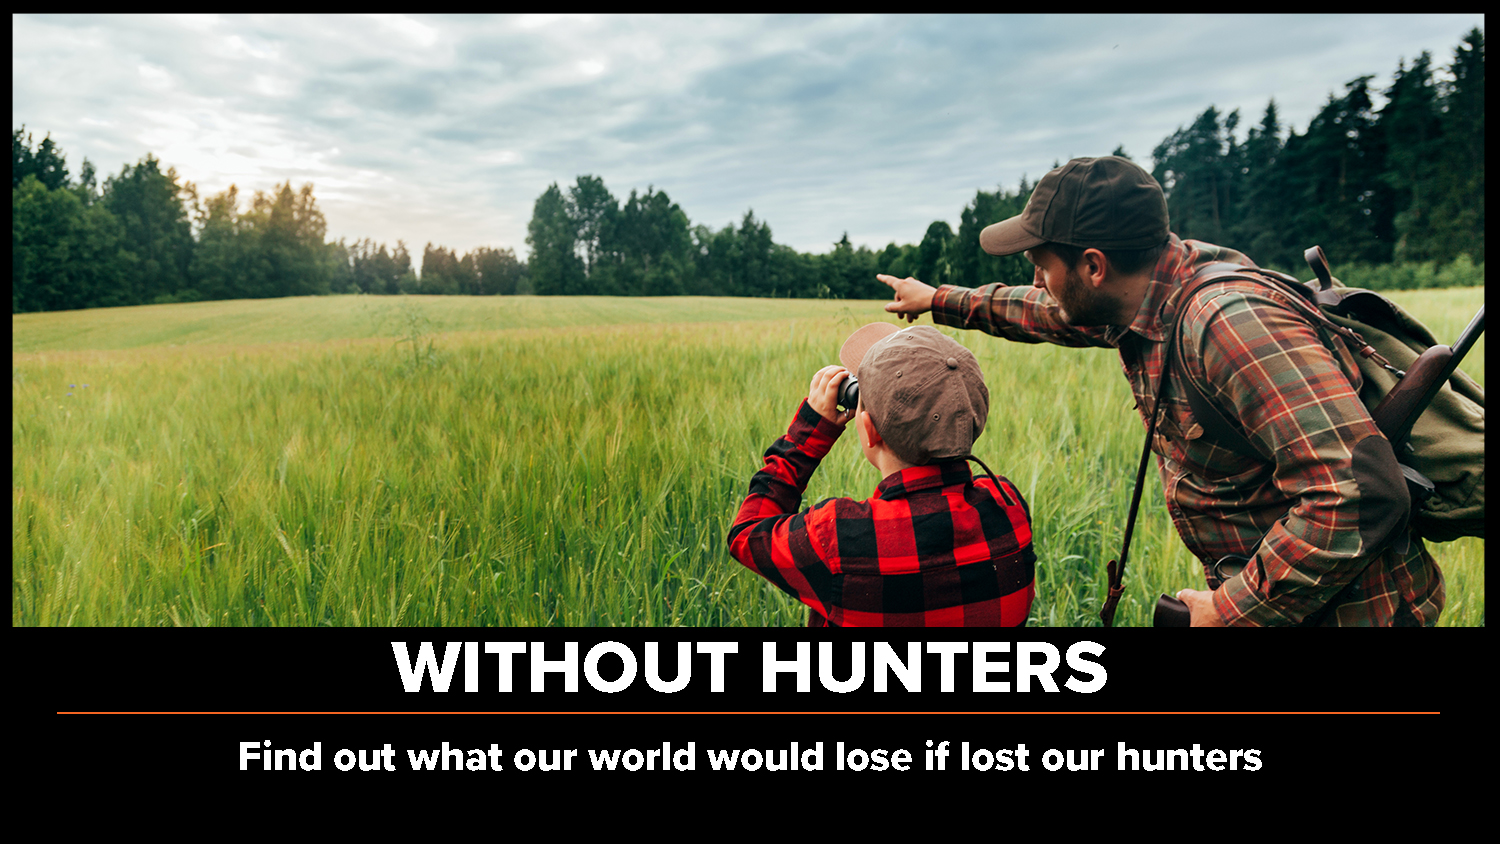 Without Hunters